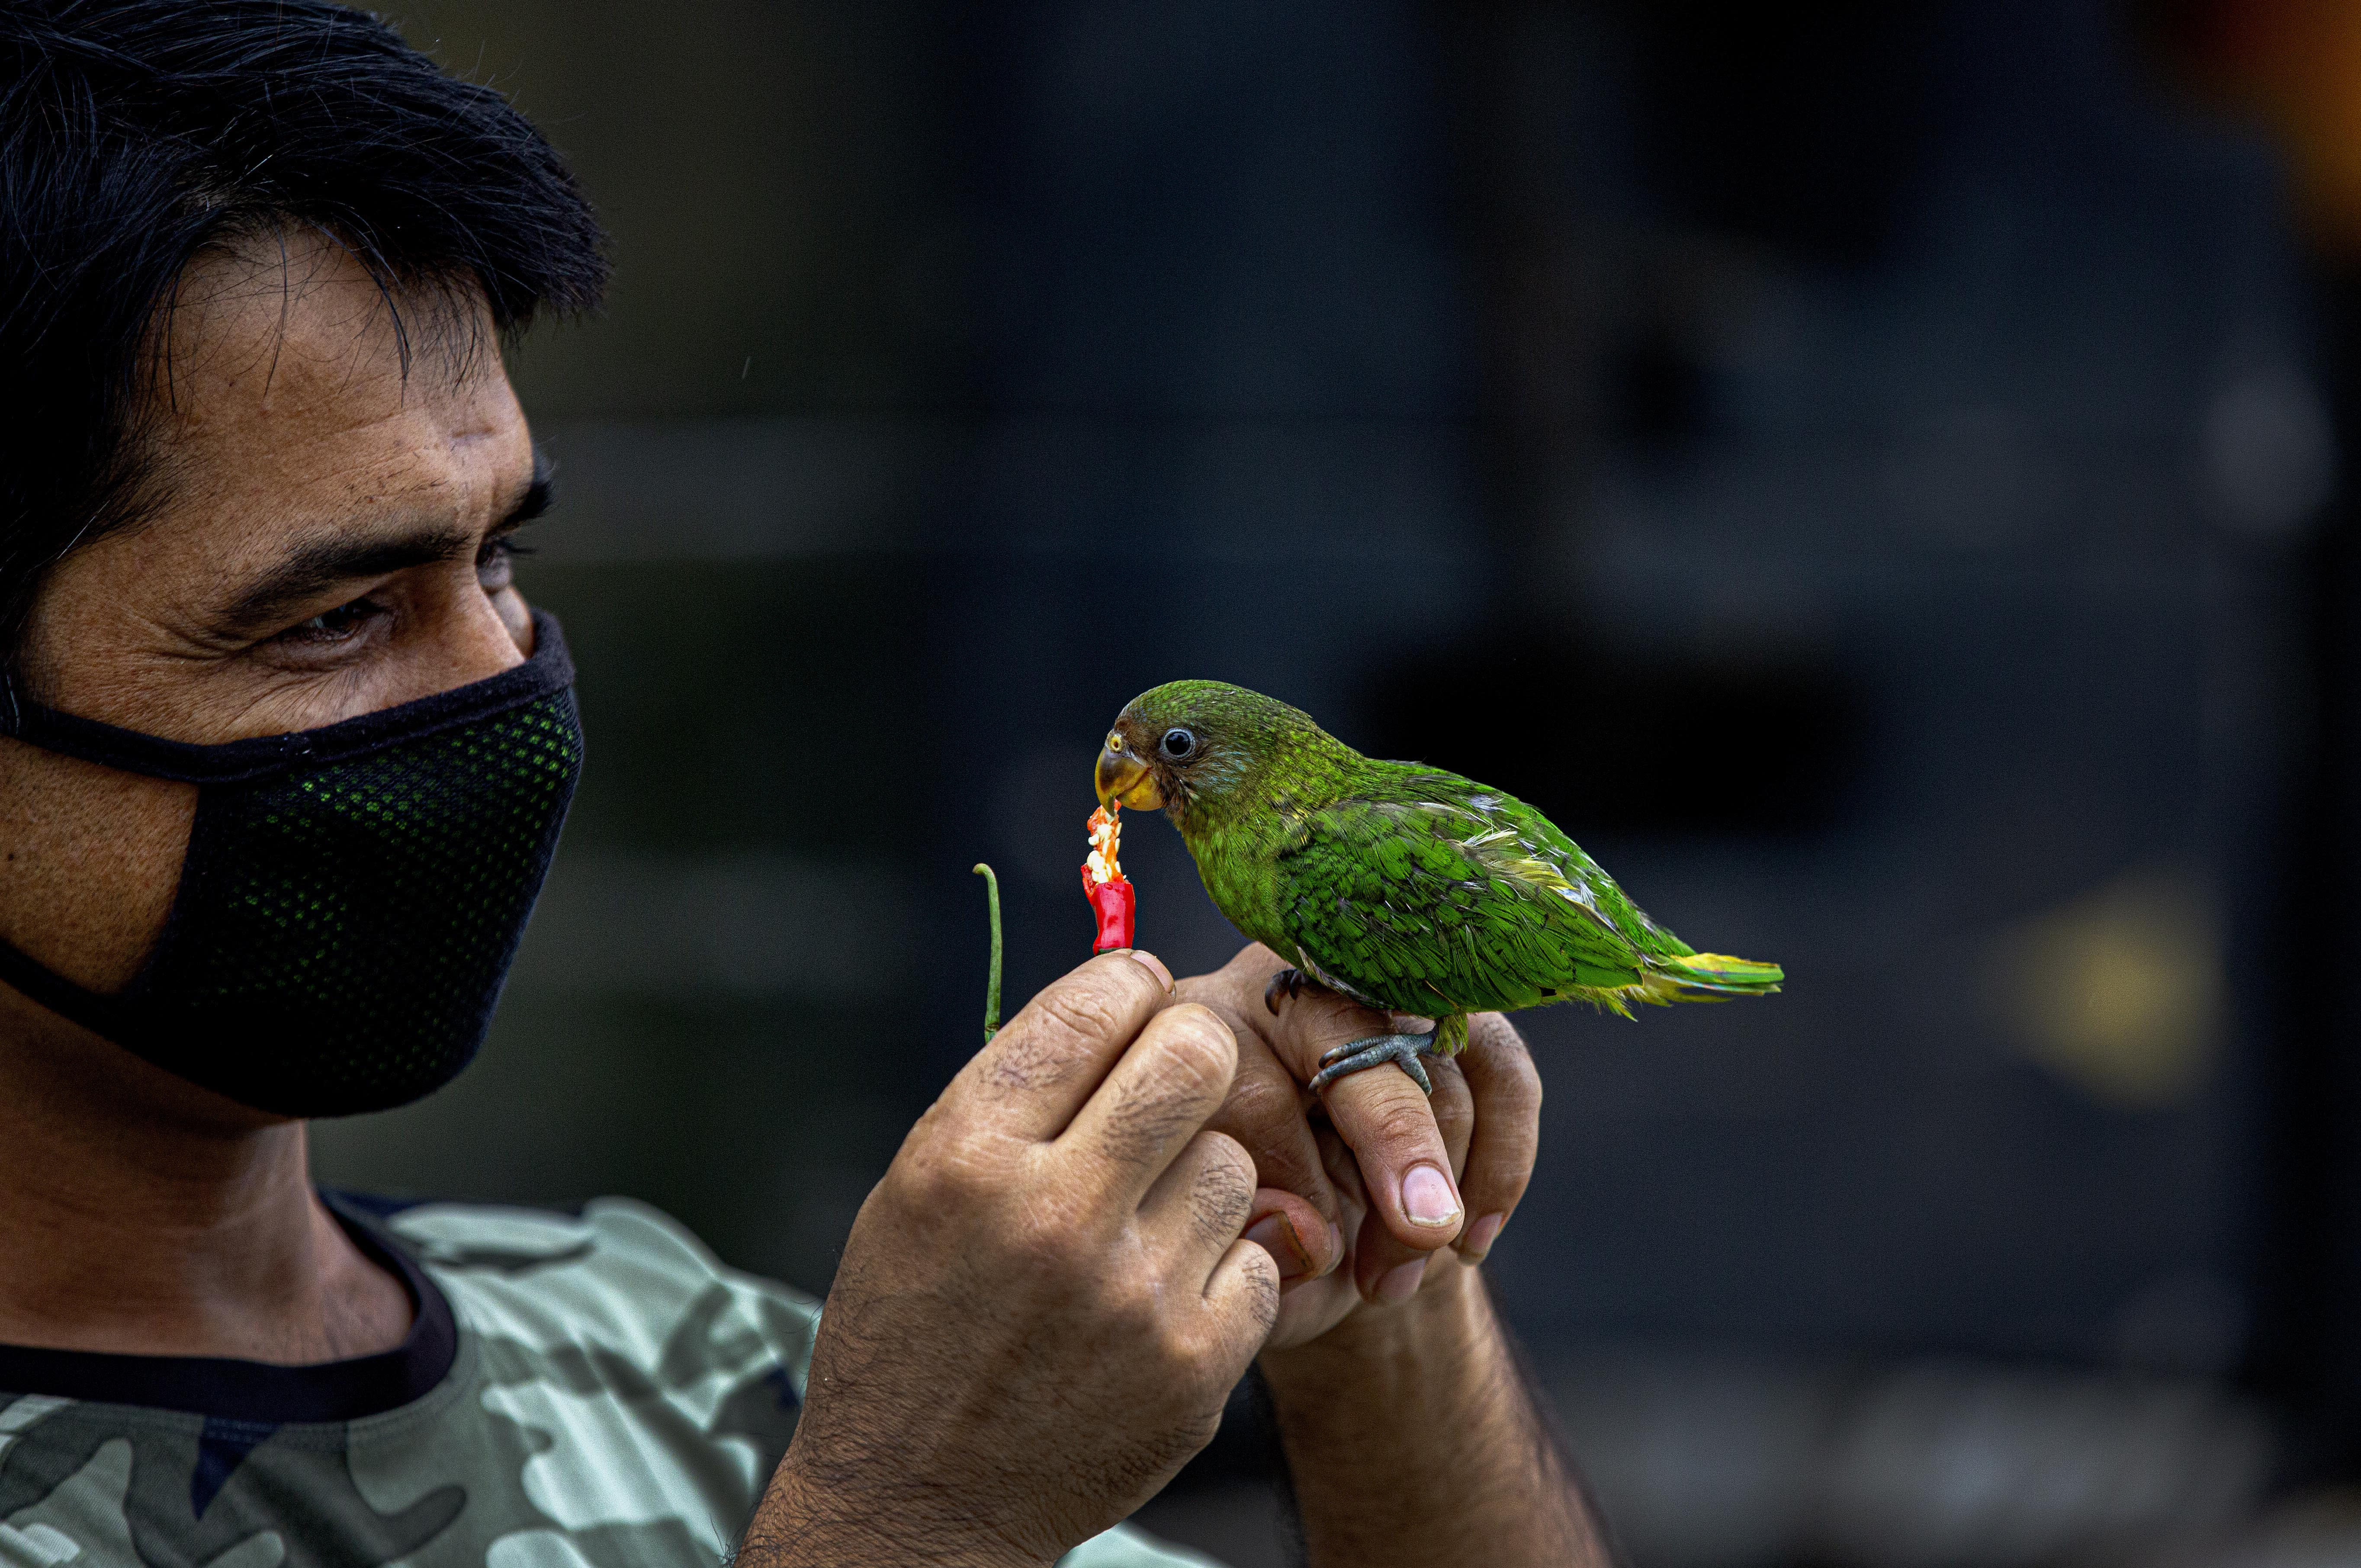 An Indian man wearing a face mask feeds chilly to a baby parrot during fresh lockdown imposed in Gauhati, Assam state, India, Sunday, July 12, 2020. India is the world's third worst-affected country by the coronavirus. (AP Photo/Anupam Nath)